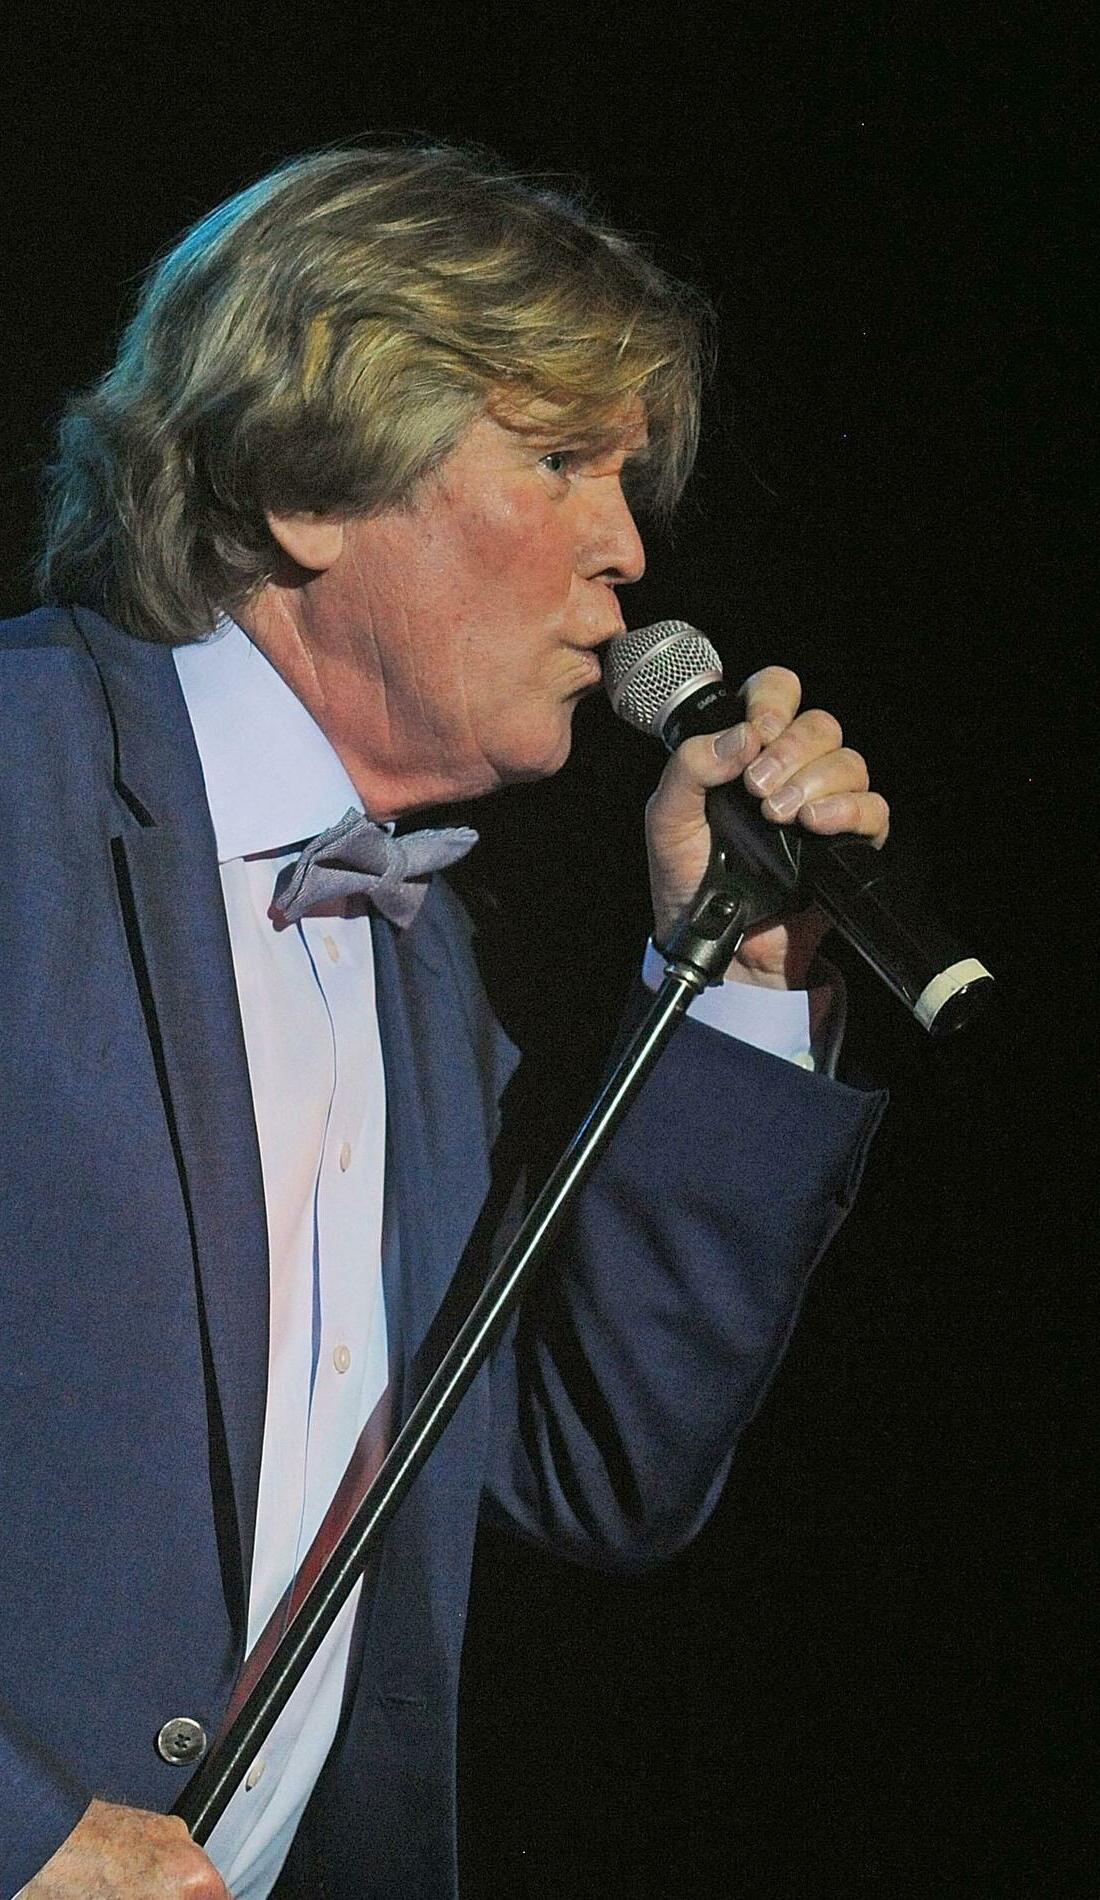 A Peter Noone live event